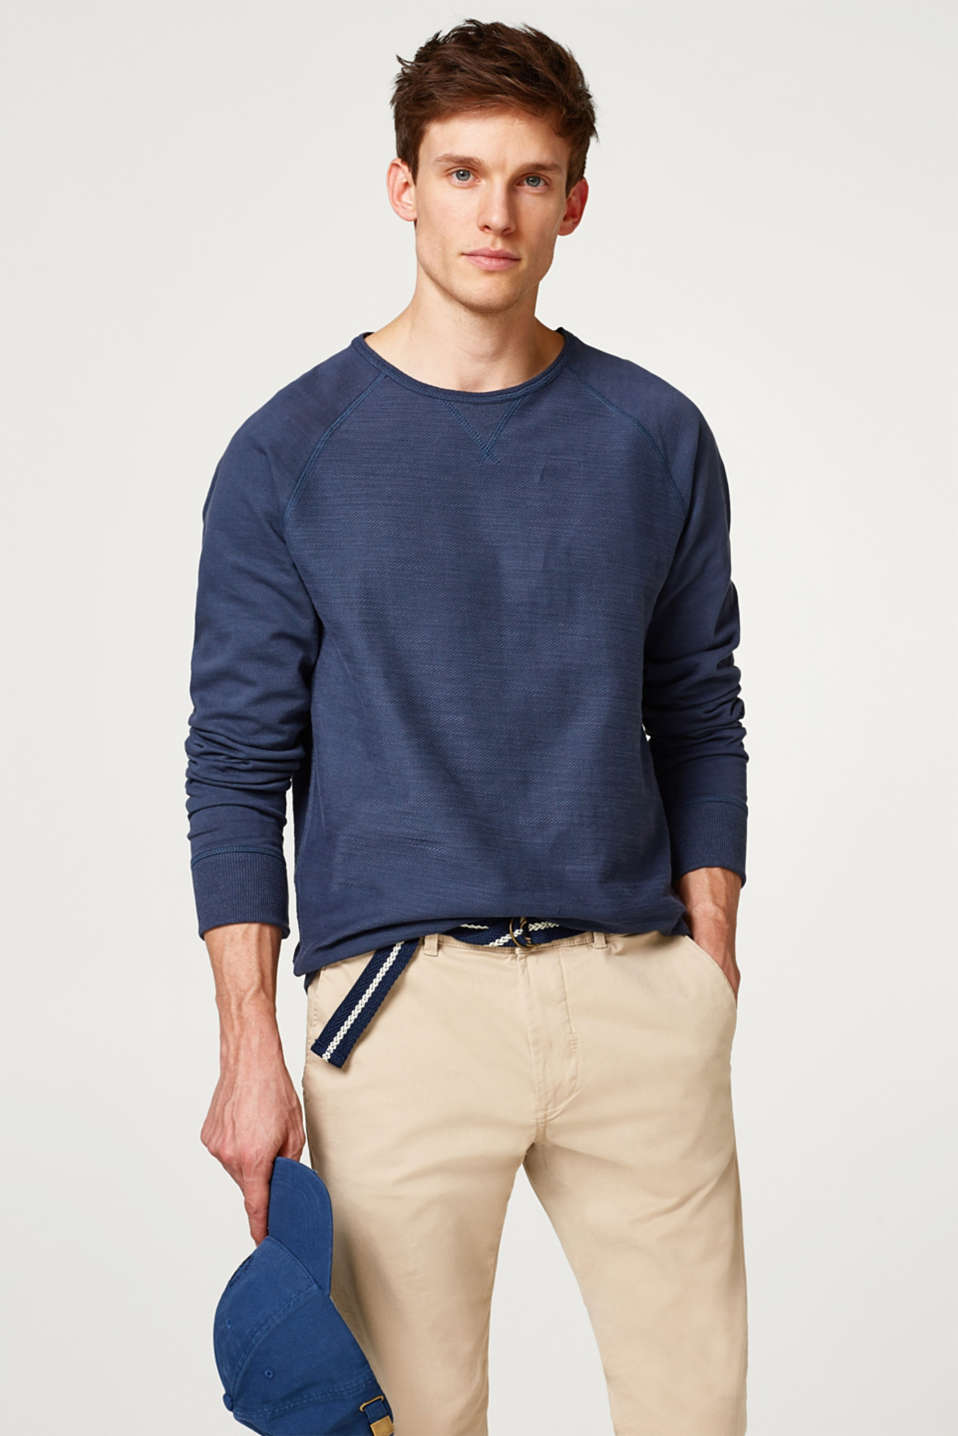 Esprit - Light sweatshirt with a striking texture